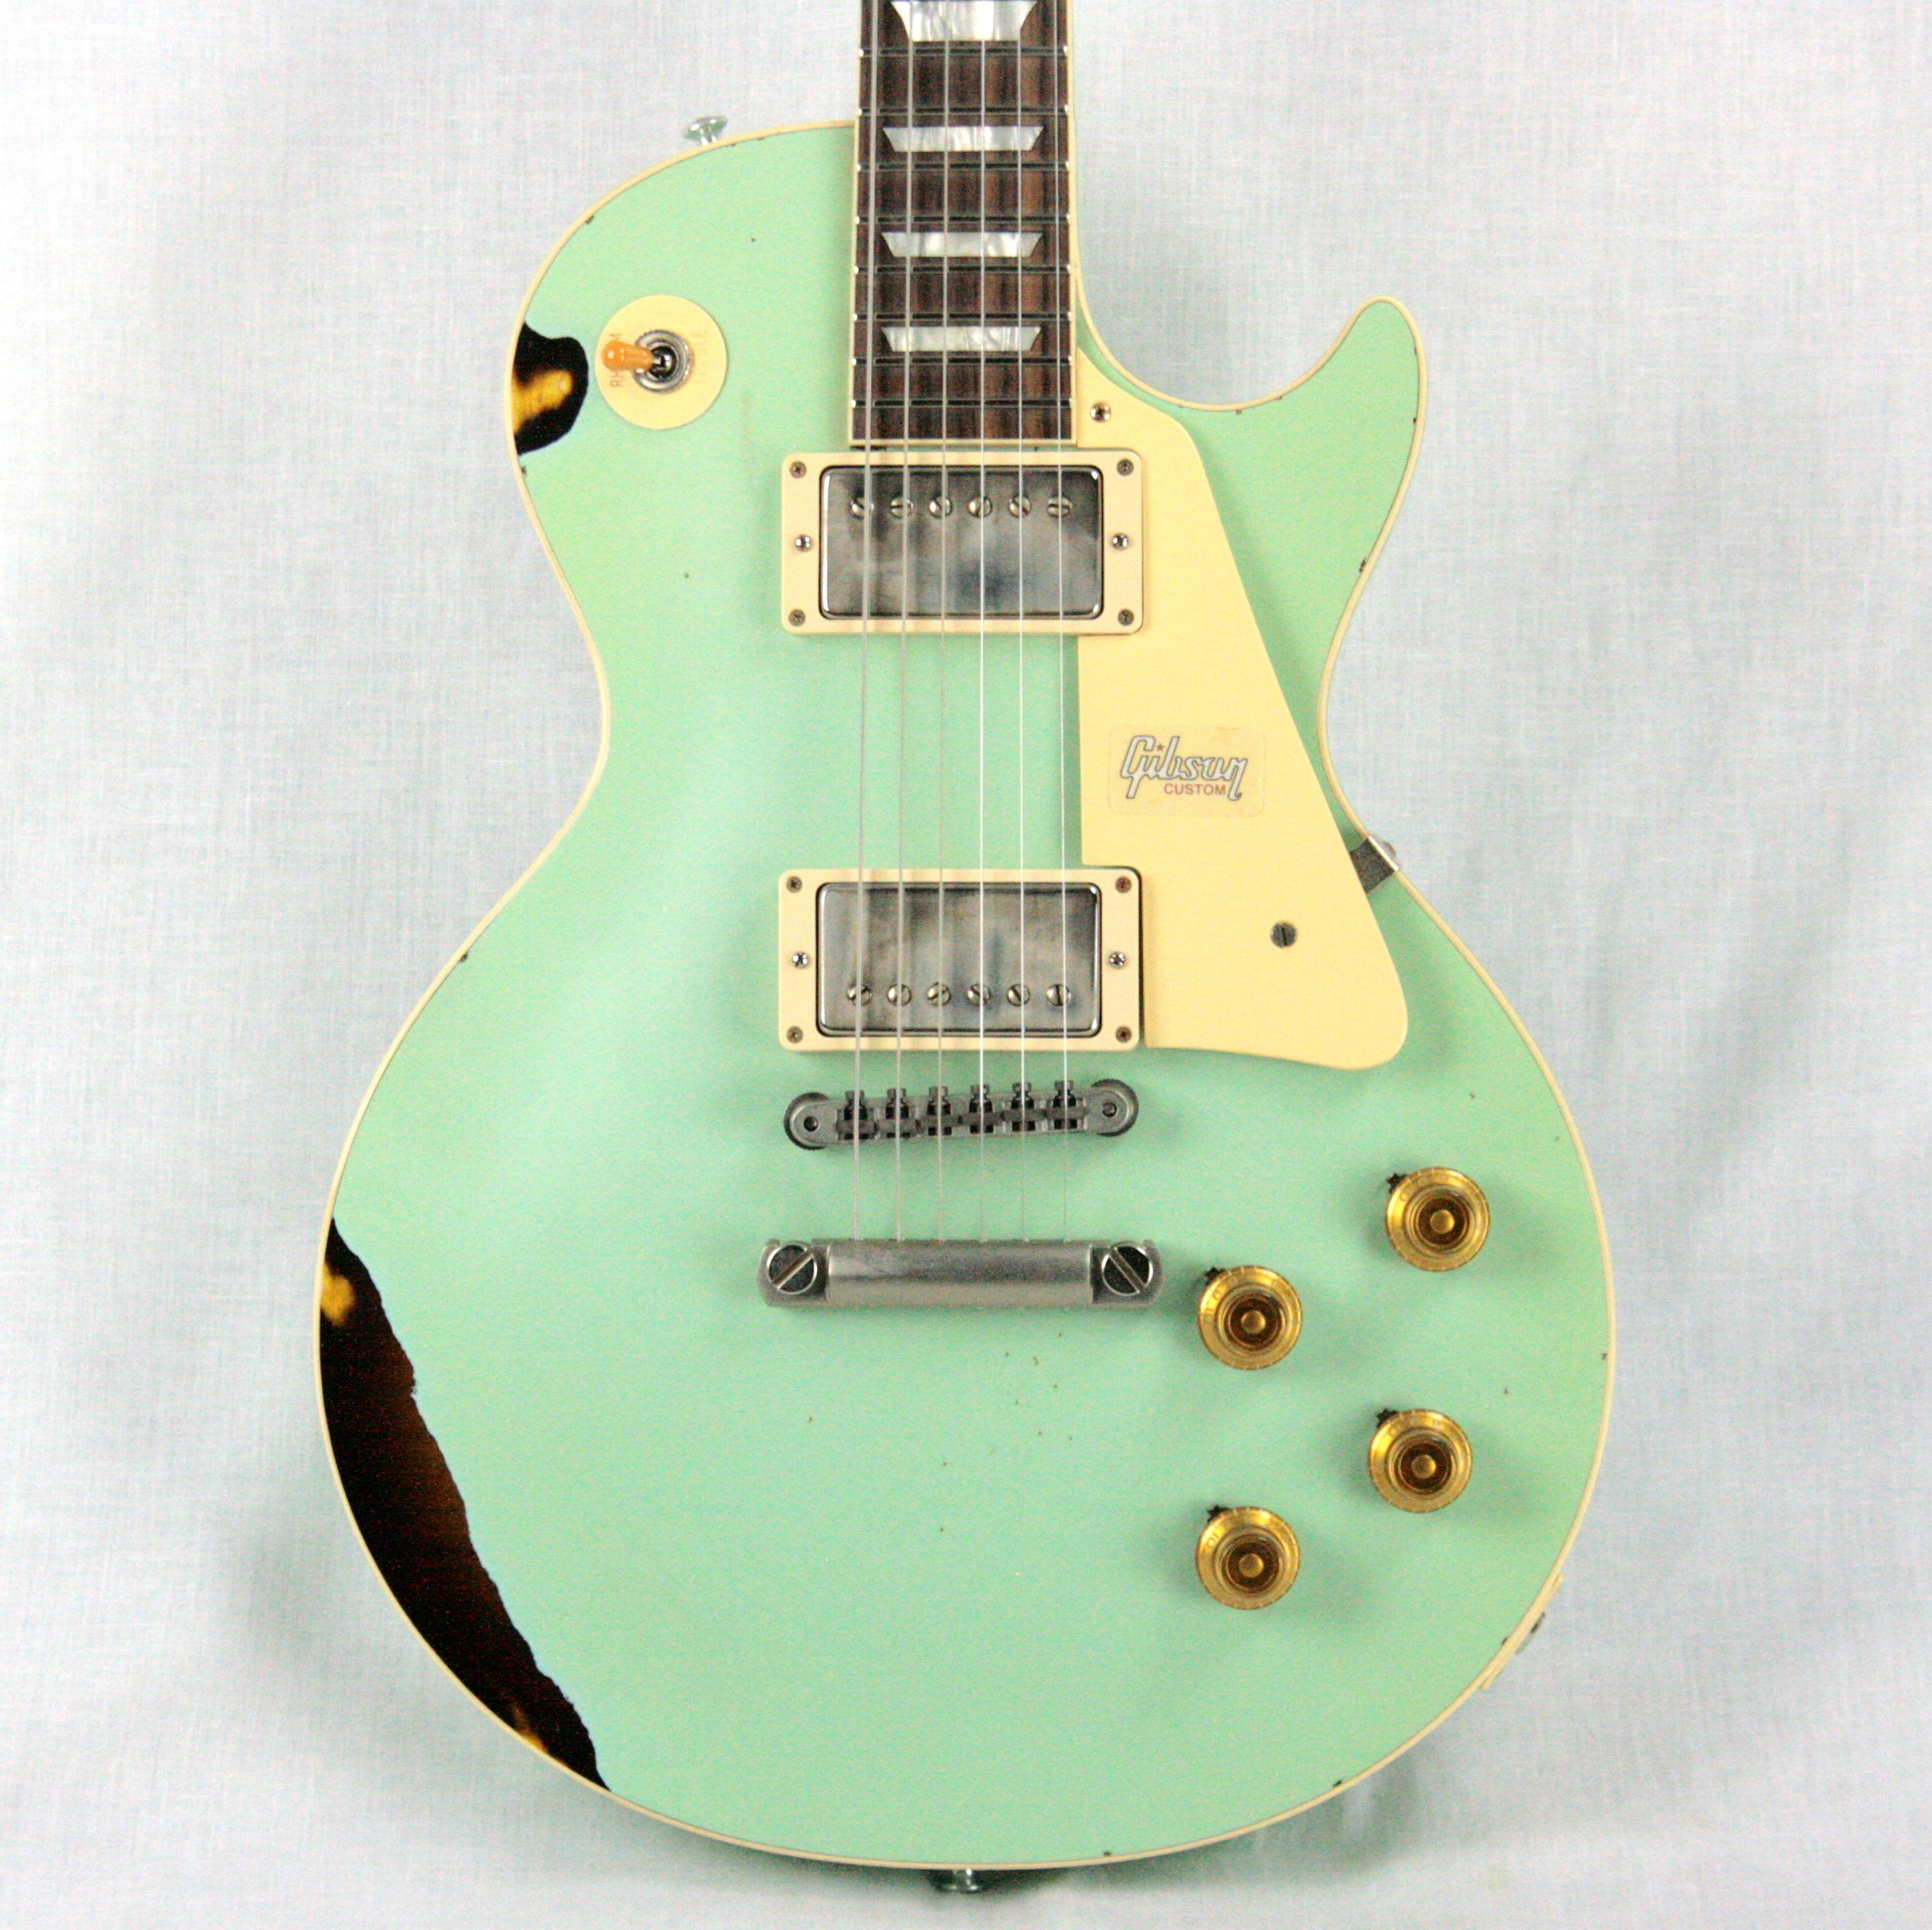 1958 Gibson Custom Shop AGED 58 Les Paul Reissue Kerry Green Over Dark Burst